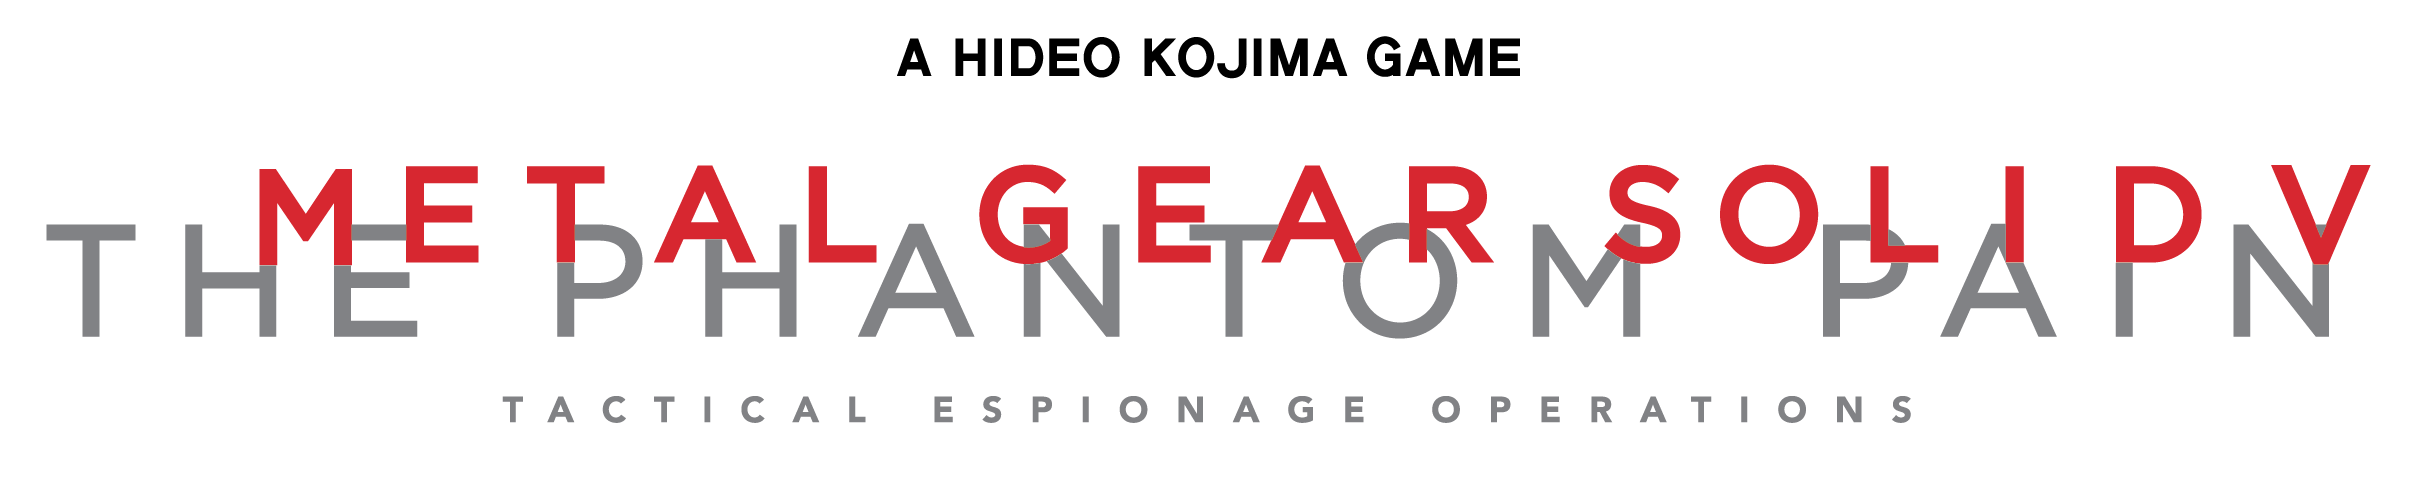 Metal gear solid 5 png. V the phantom pain